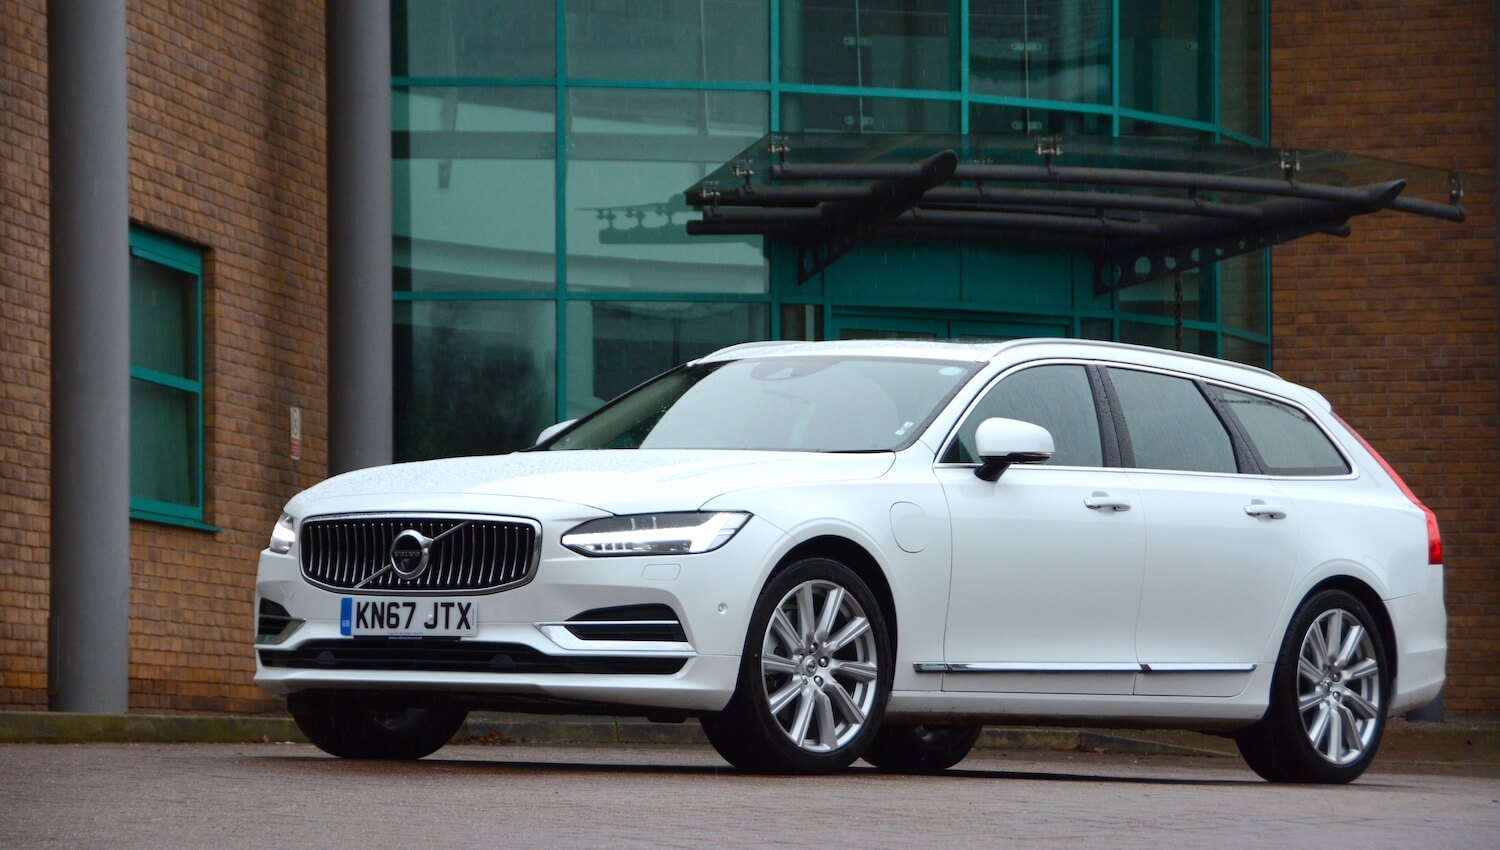 Volvo V >> Volvo V90 T8 Twin Engine Inscription Pro REVIEW - GreenCarGuide.co.uk